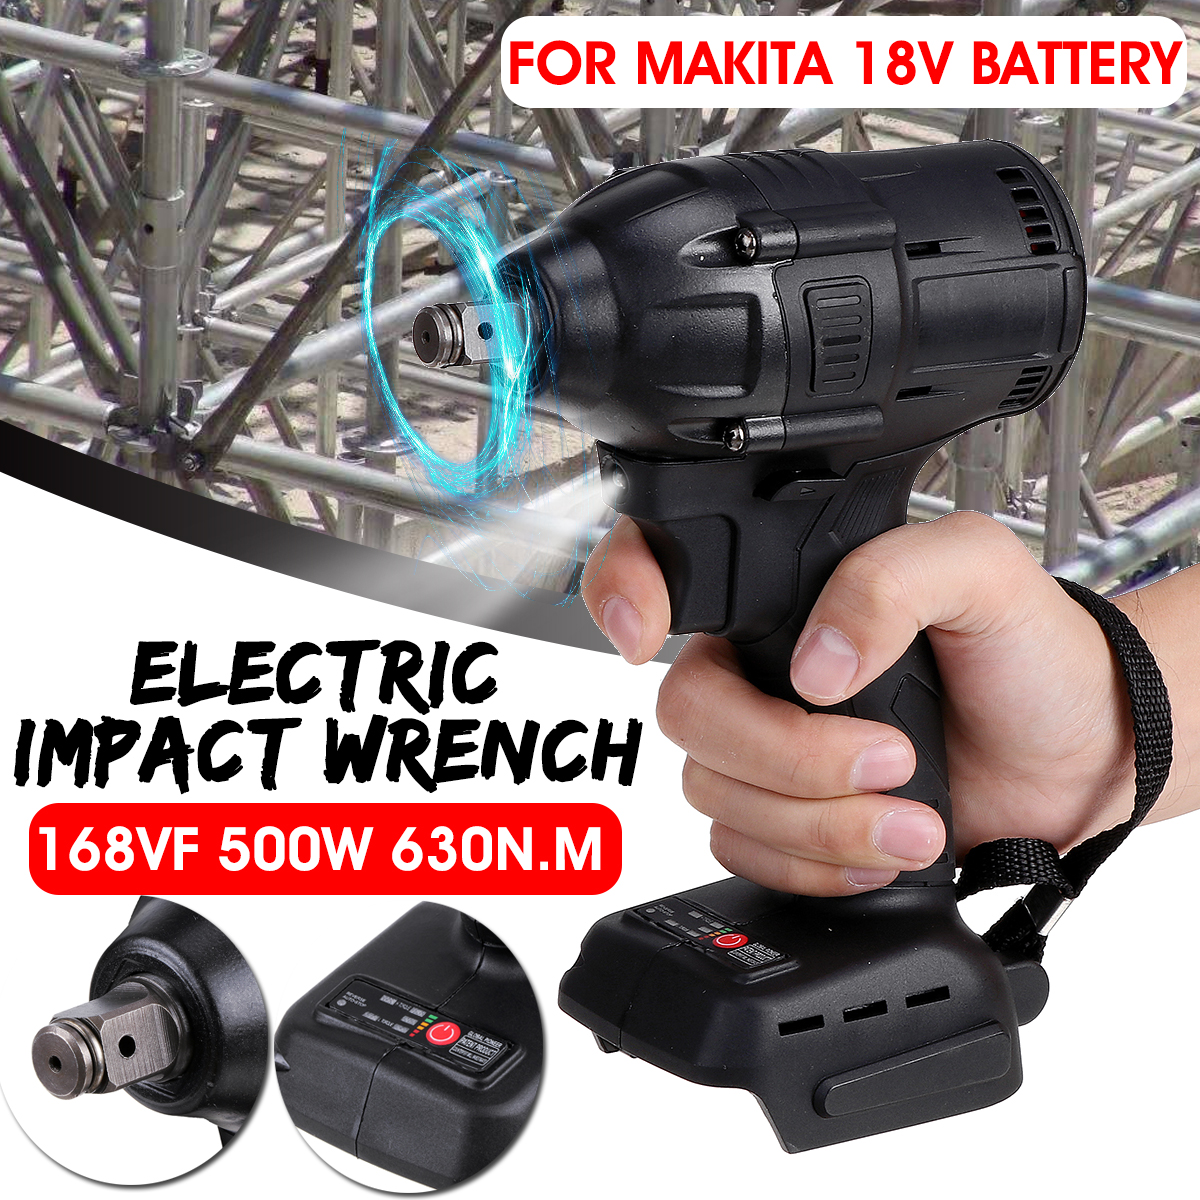 Drillpro 630nN m Cordless Brushless Electric Impact Wrench 1 2   Socket Wrench Power Tool Rechargeable For 18V Makita Battery